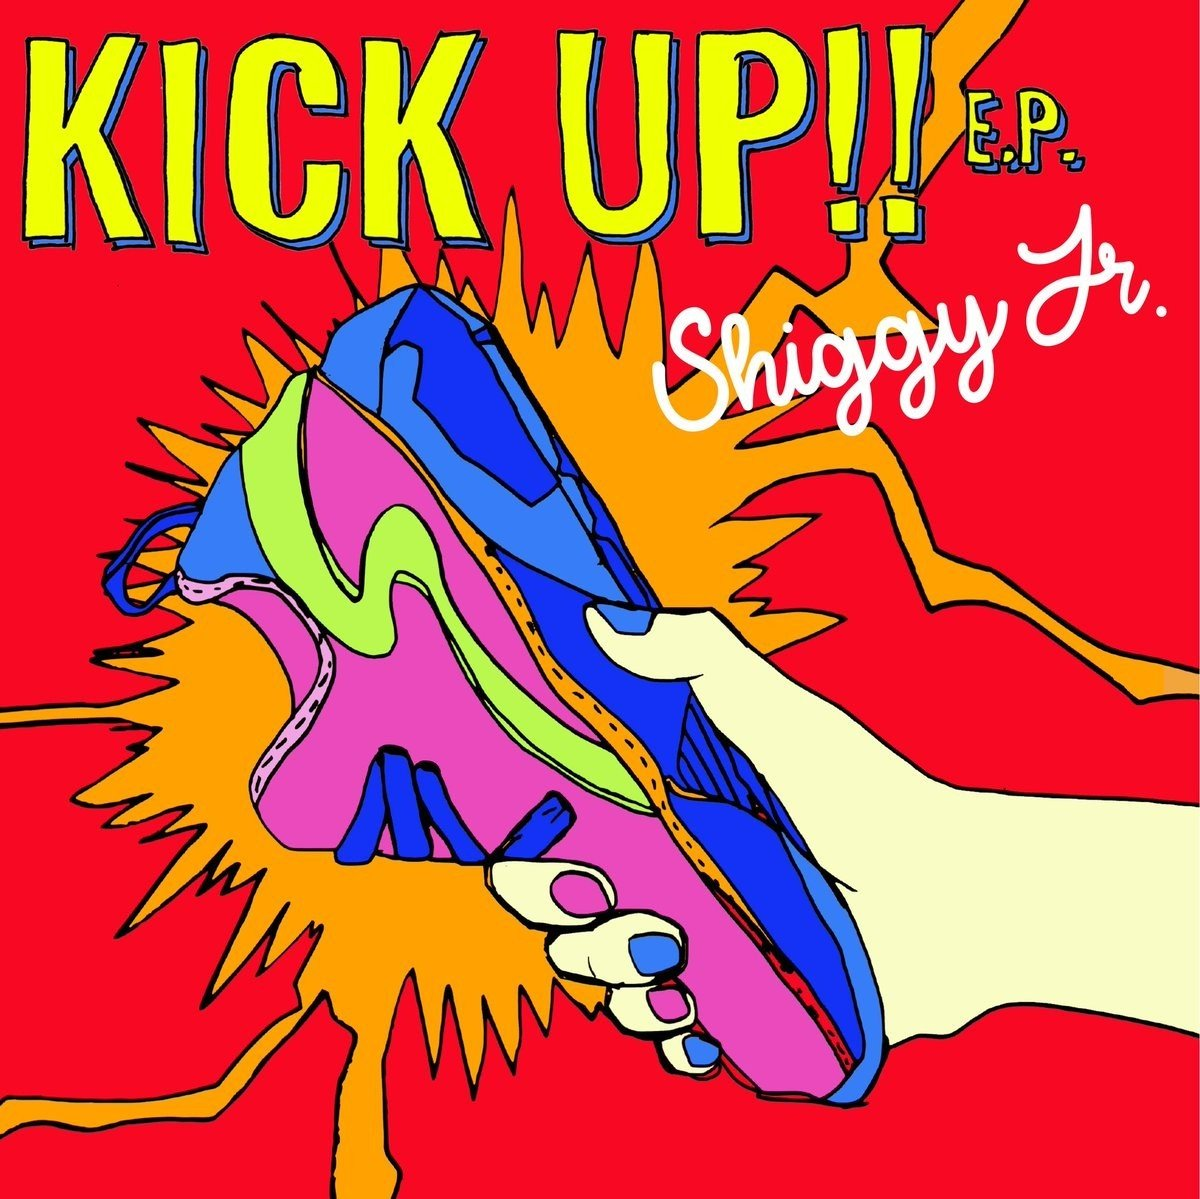 Shiggy Jr. – KICK UP!! E.P. [FLAC / 24bit Lossless / WEB] [2018.05.23]